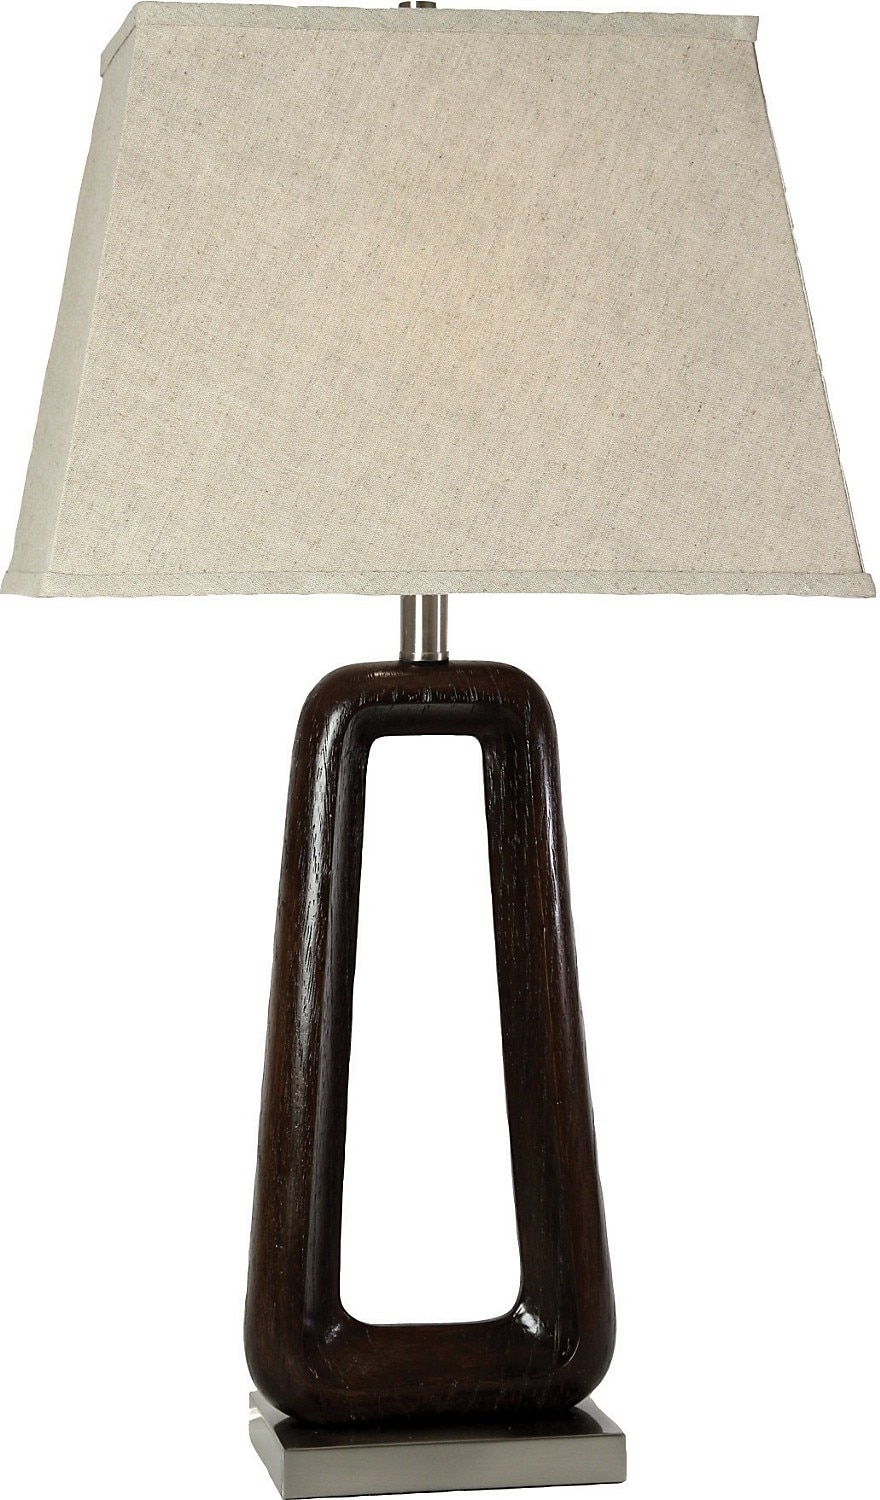 Home Accessories - Brushed Steel and Walnut Table Lamp